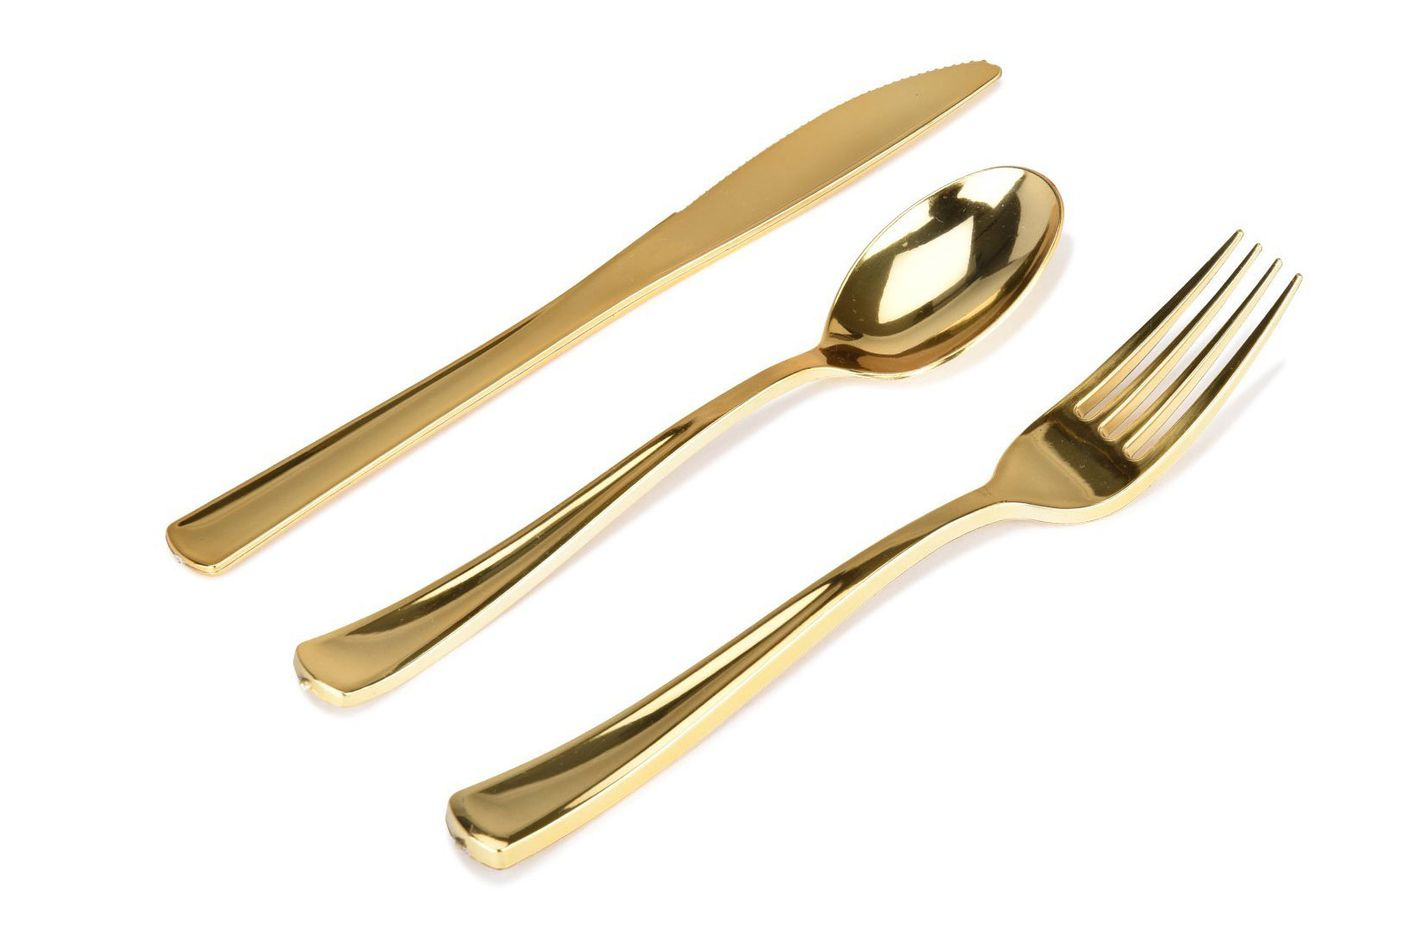 Stock Your Home 300-Piece Plastic Silverware Set, Looks Like Gold Cutlery